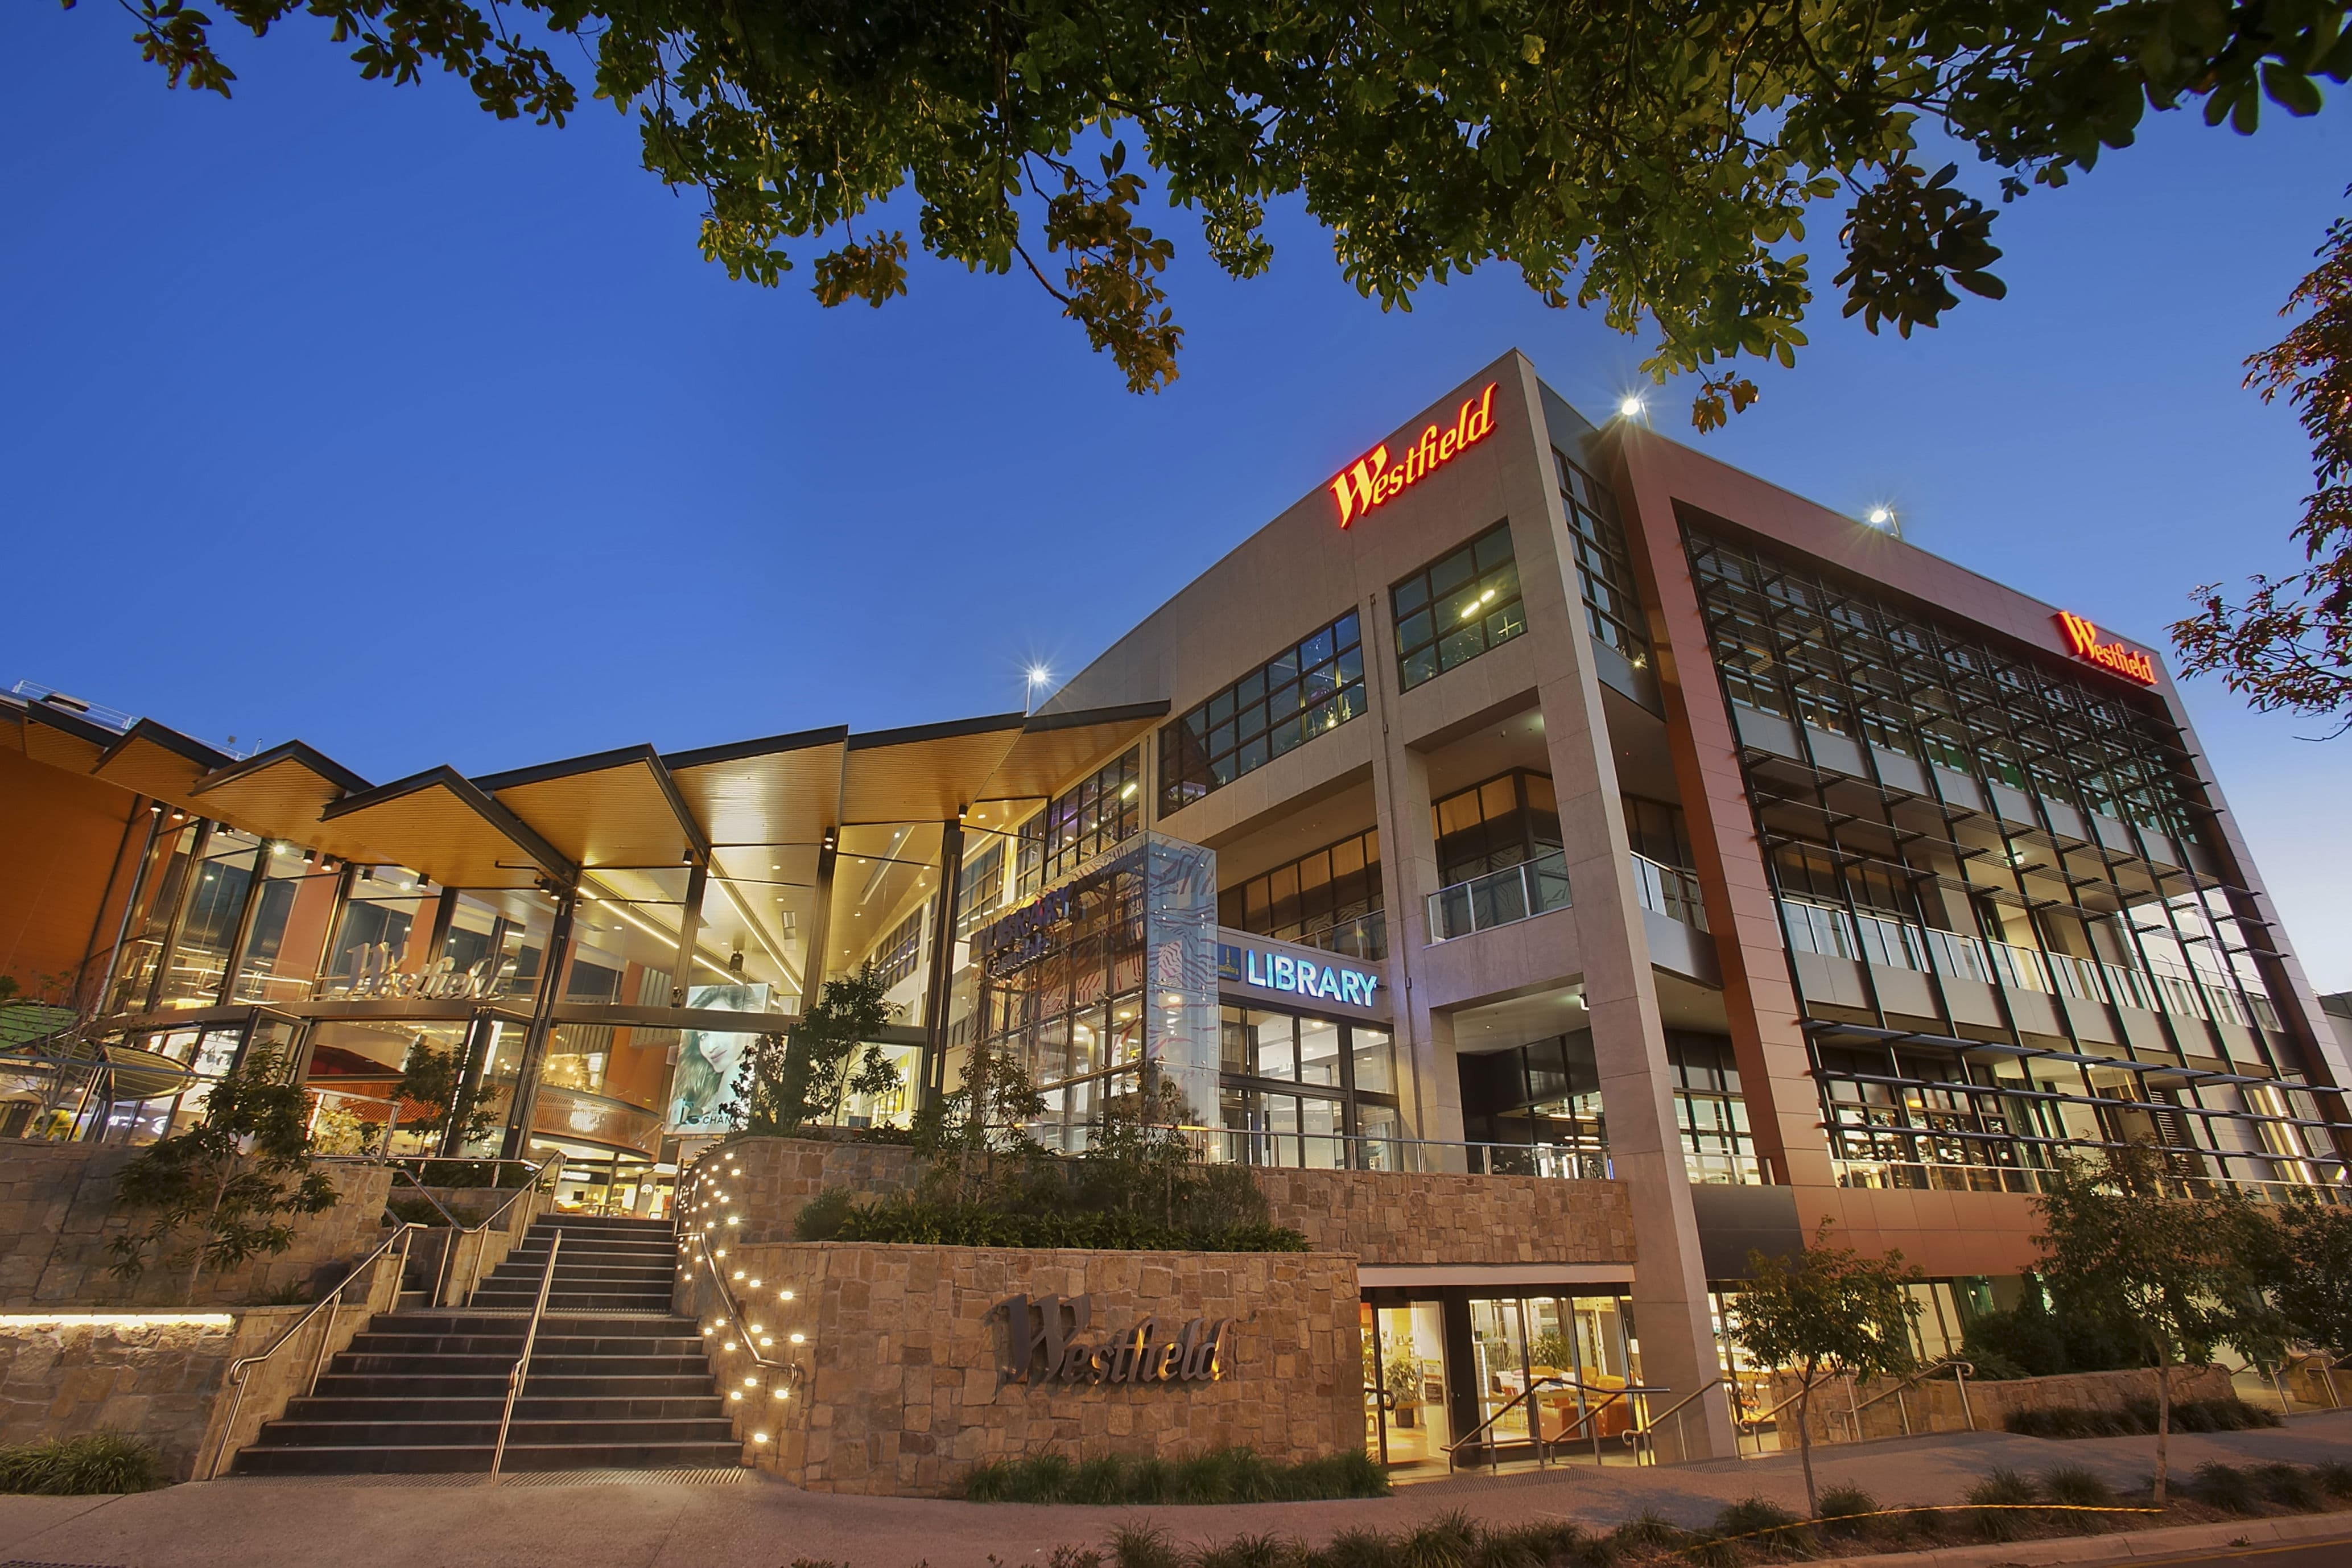 1-Carindale_Westfield_(Extra_Exterior_Dusk)-min